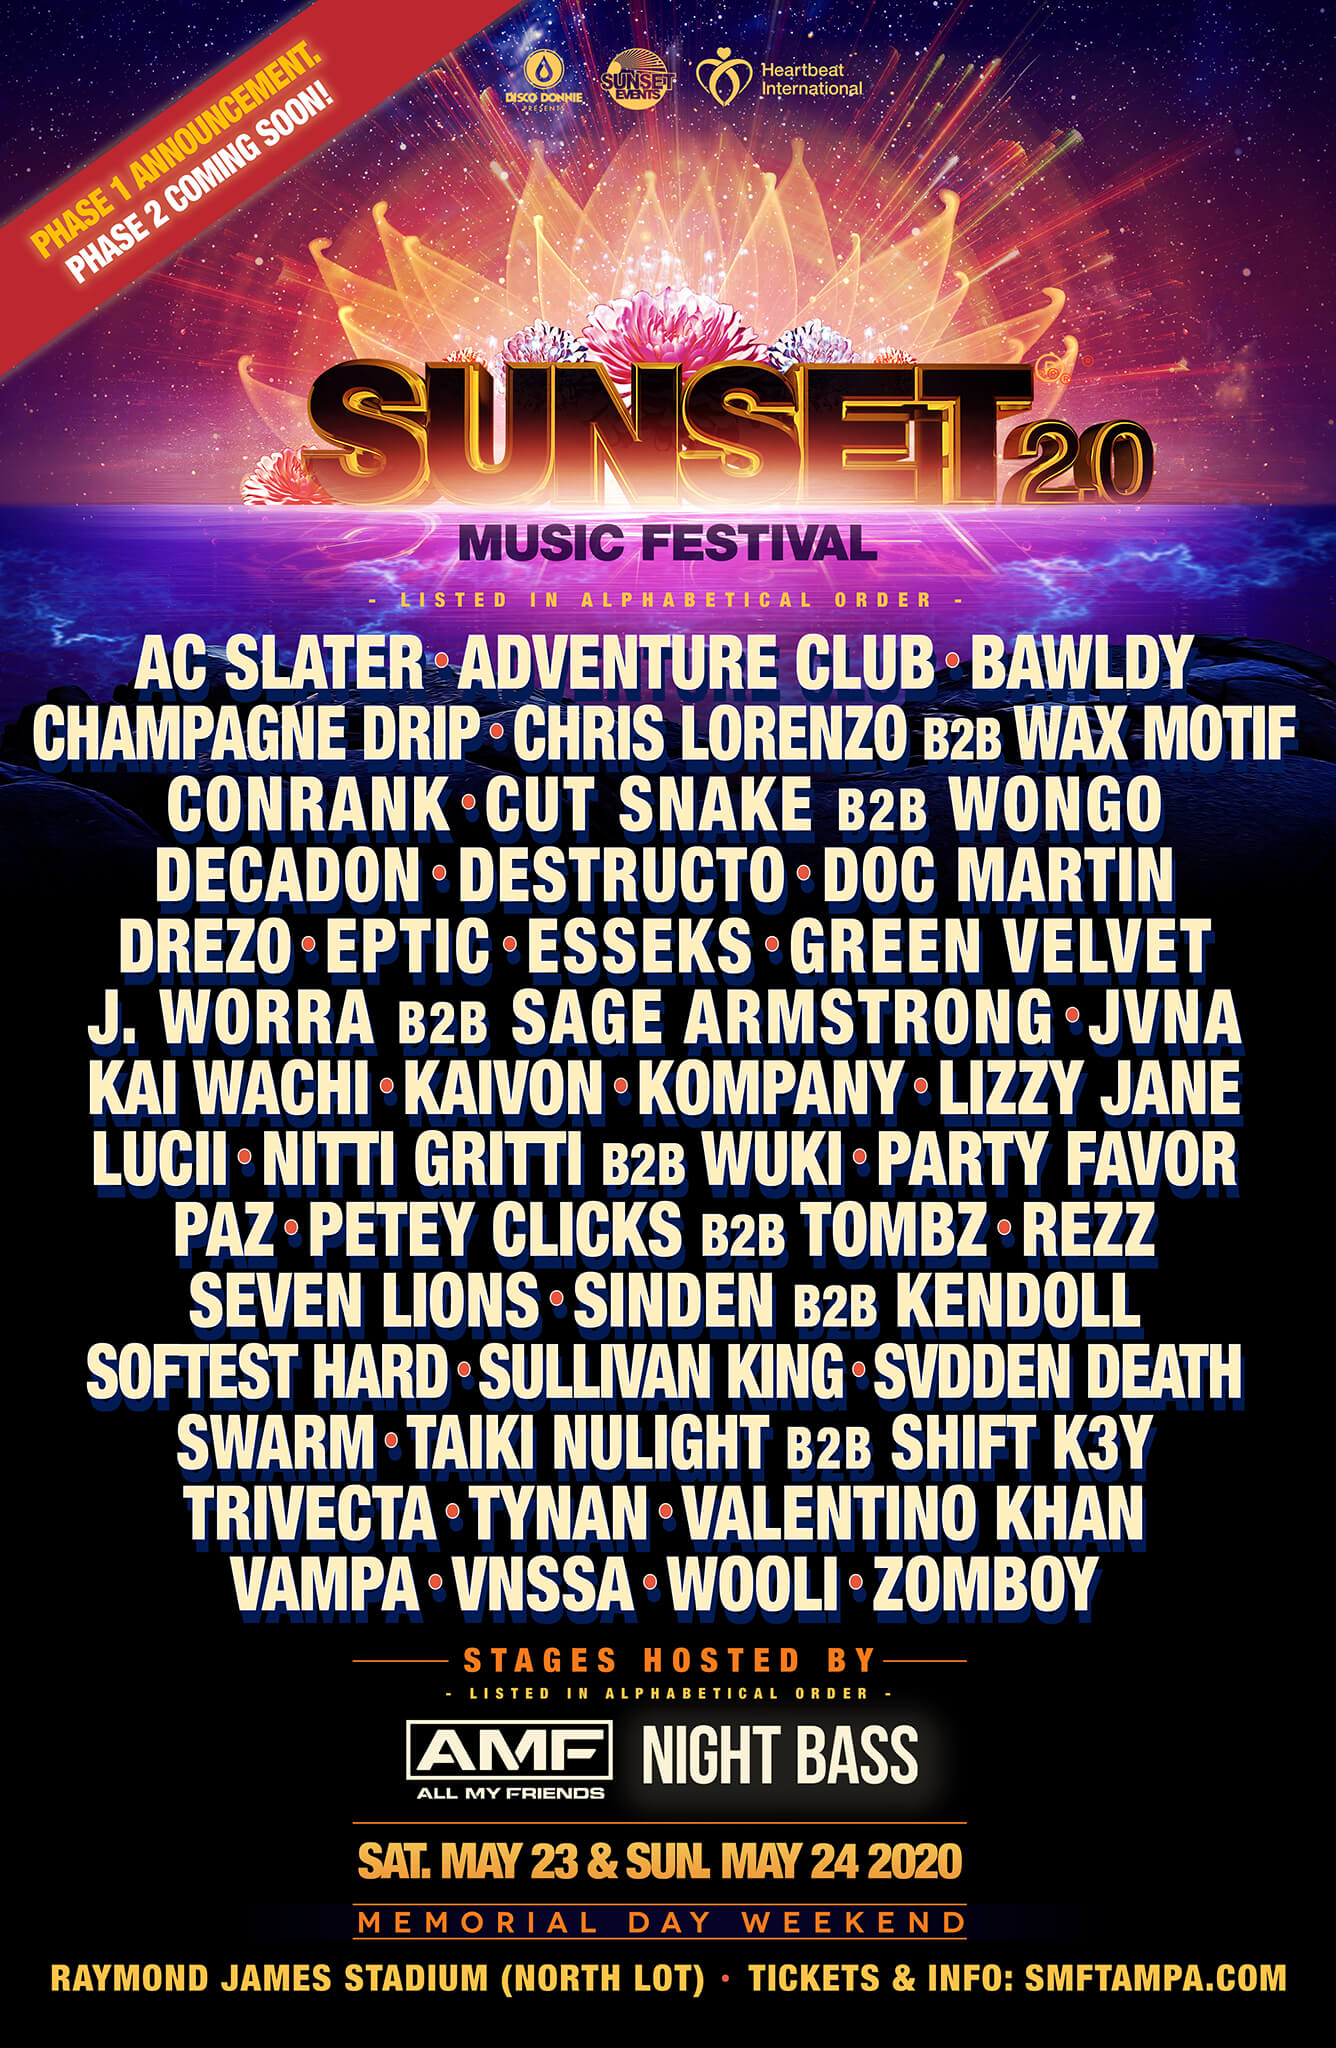 sunset music festival 2020 lineup phase 1